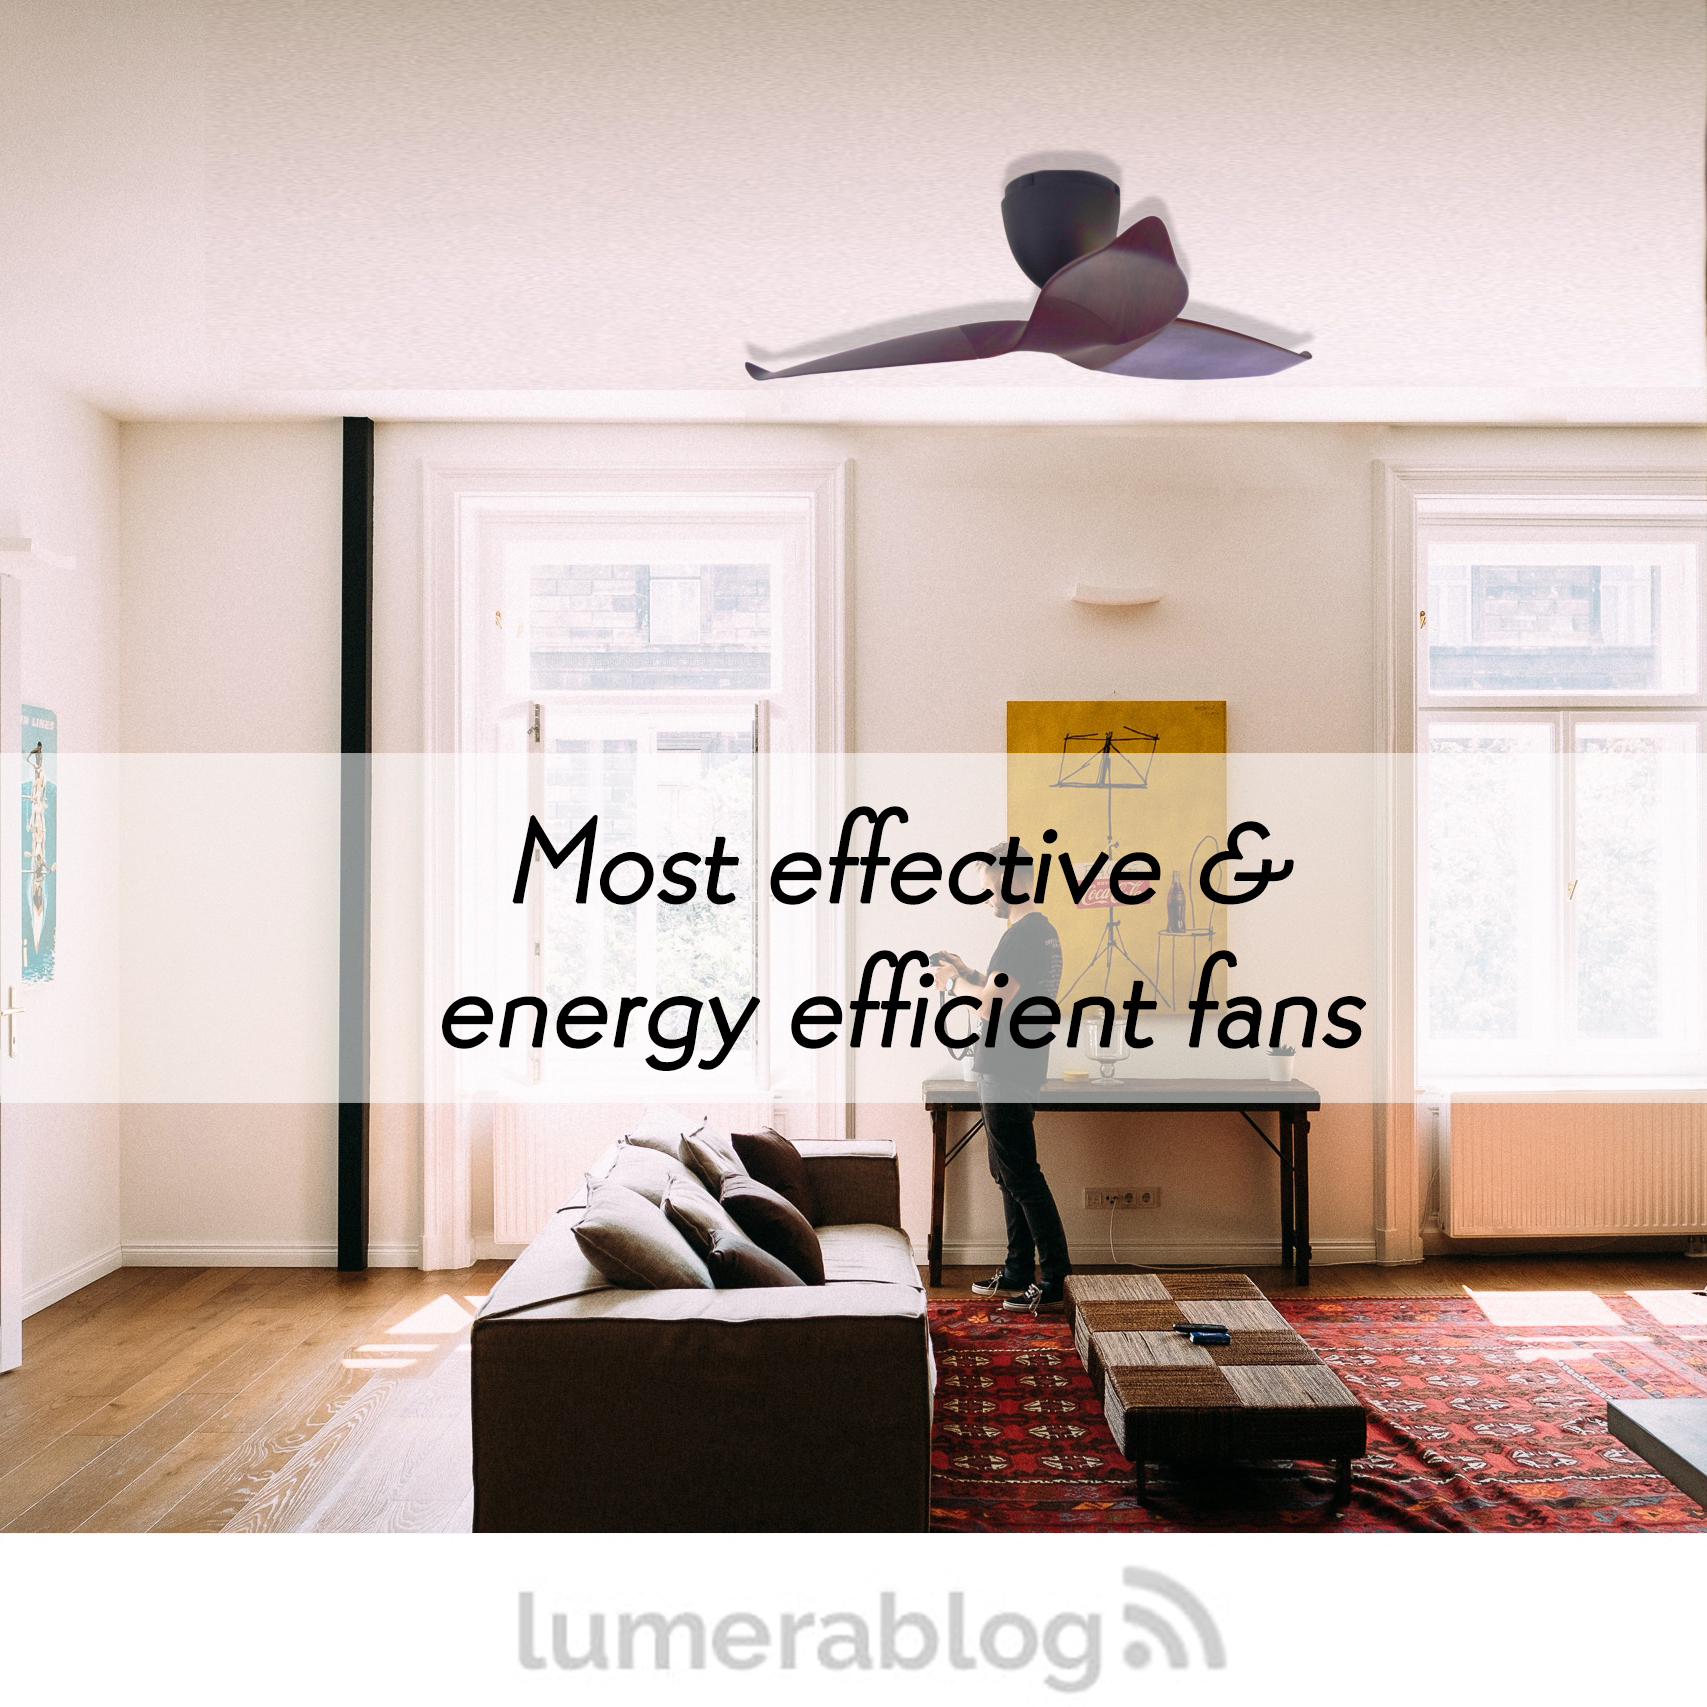 Which fans are the most energy efficient and how effective are they?